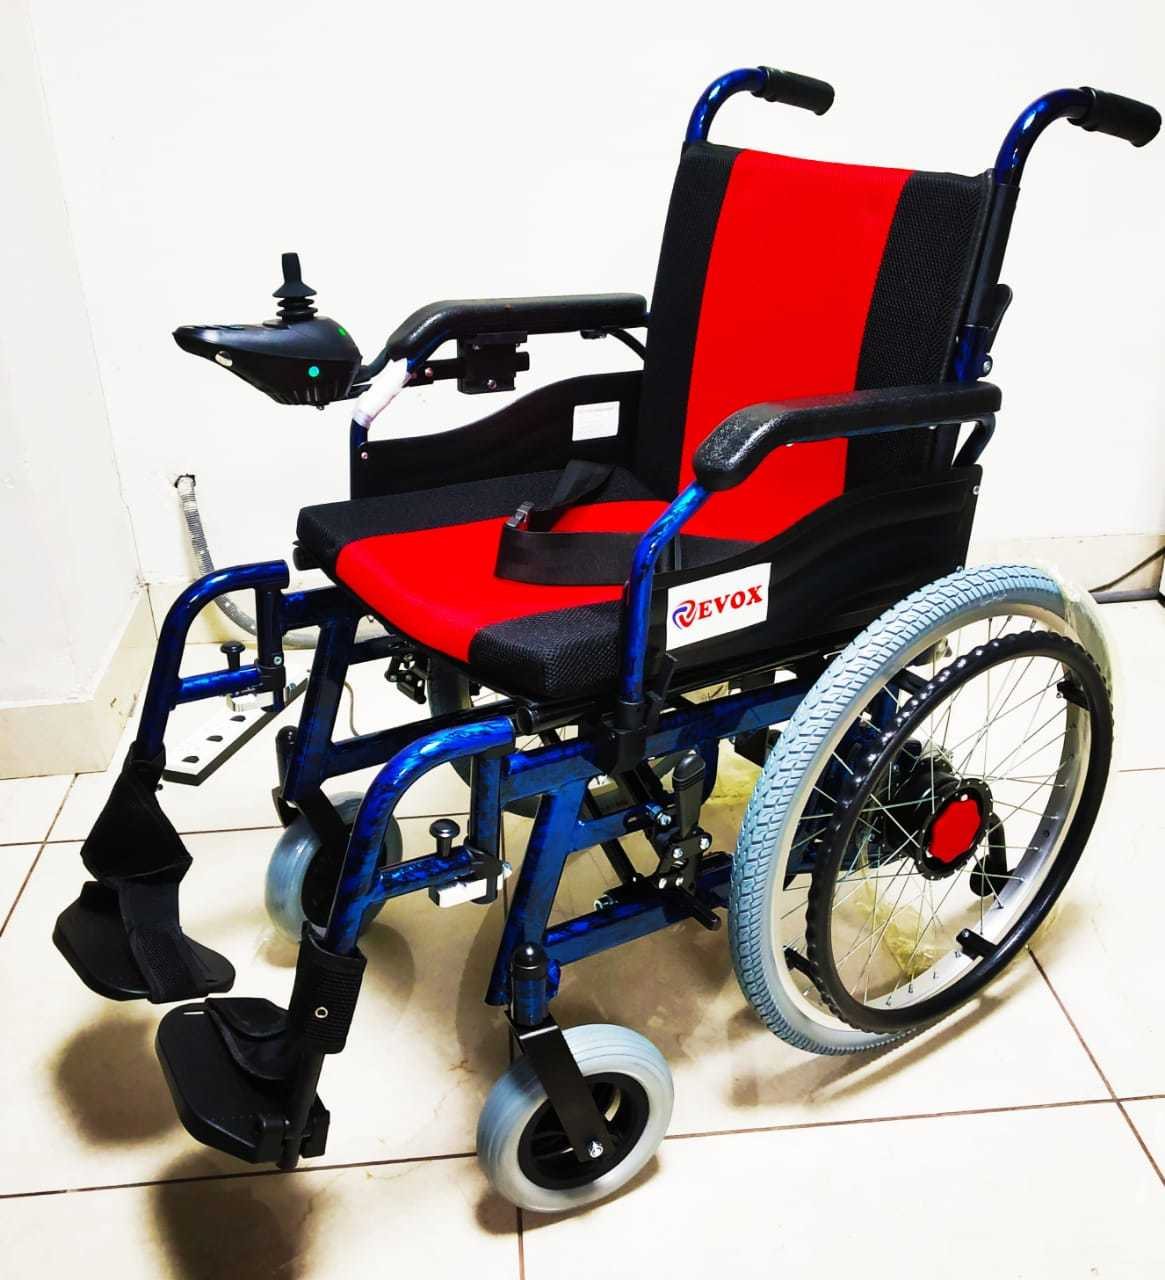 EVOX WC-103 Electric Wheel Chair